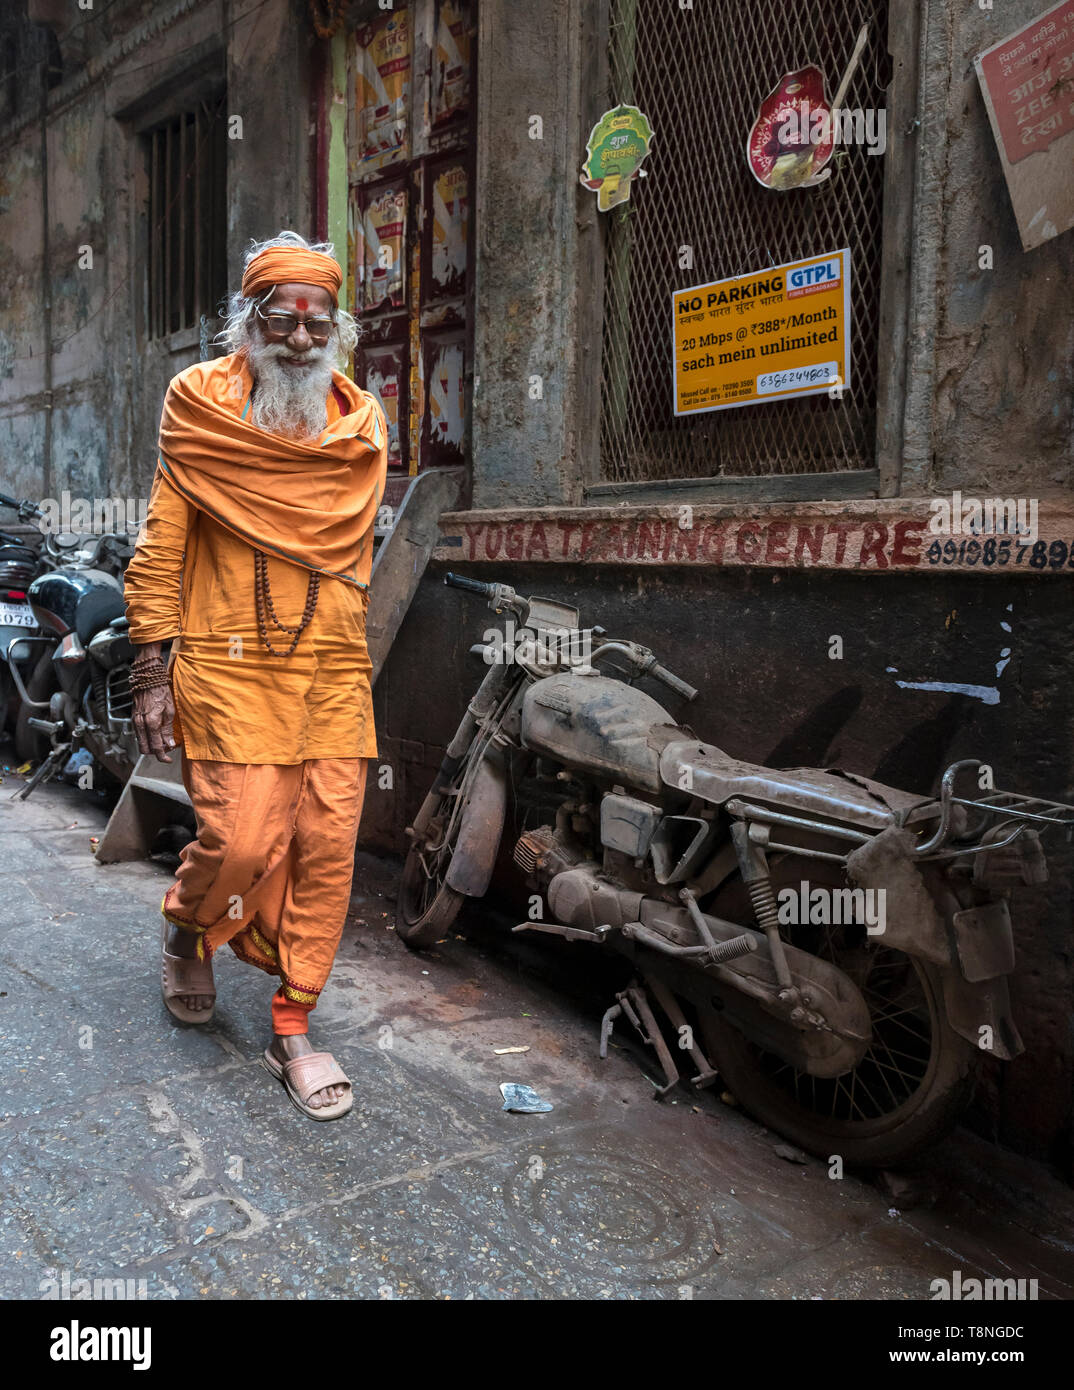 Hindu priest walks pass an abandoned motorcycle in the narrow streets of Old City of Varanasi, India - Stock Image